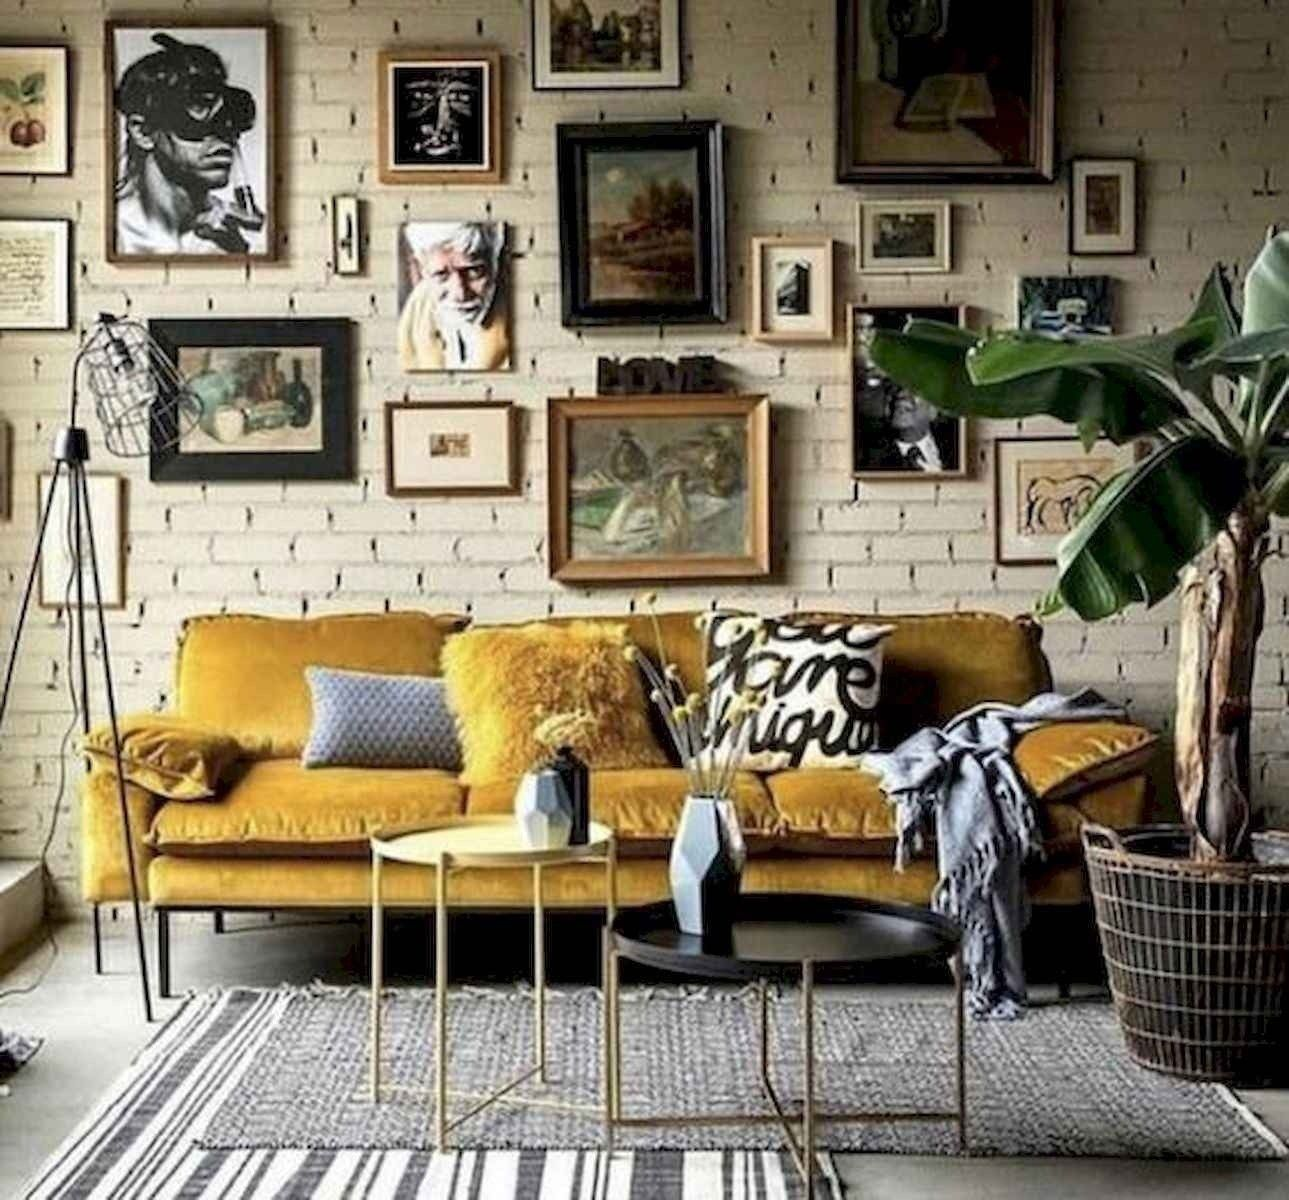 80 Stunning Colorful Living Room Decor Ideas And Remodel For Summer Project In 2020 Vintage Living Room Decor Eclectic Living Room Living Room Decor Colors